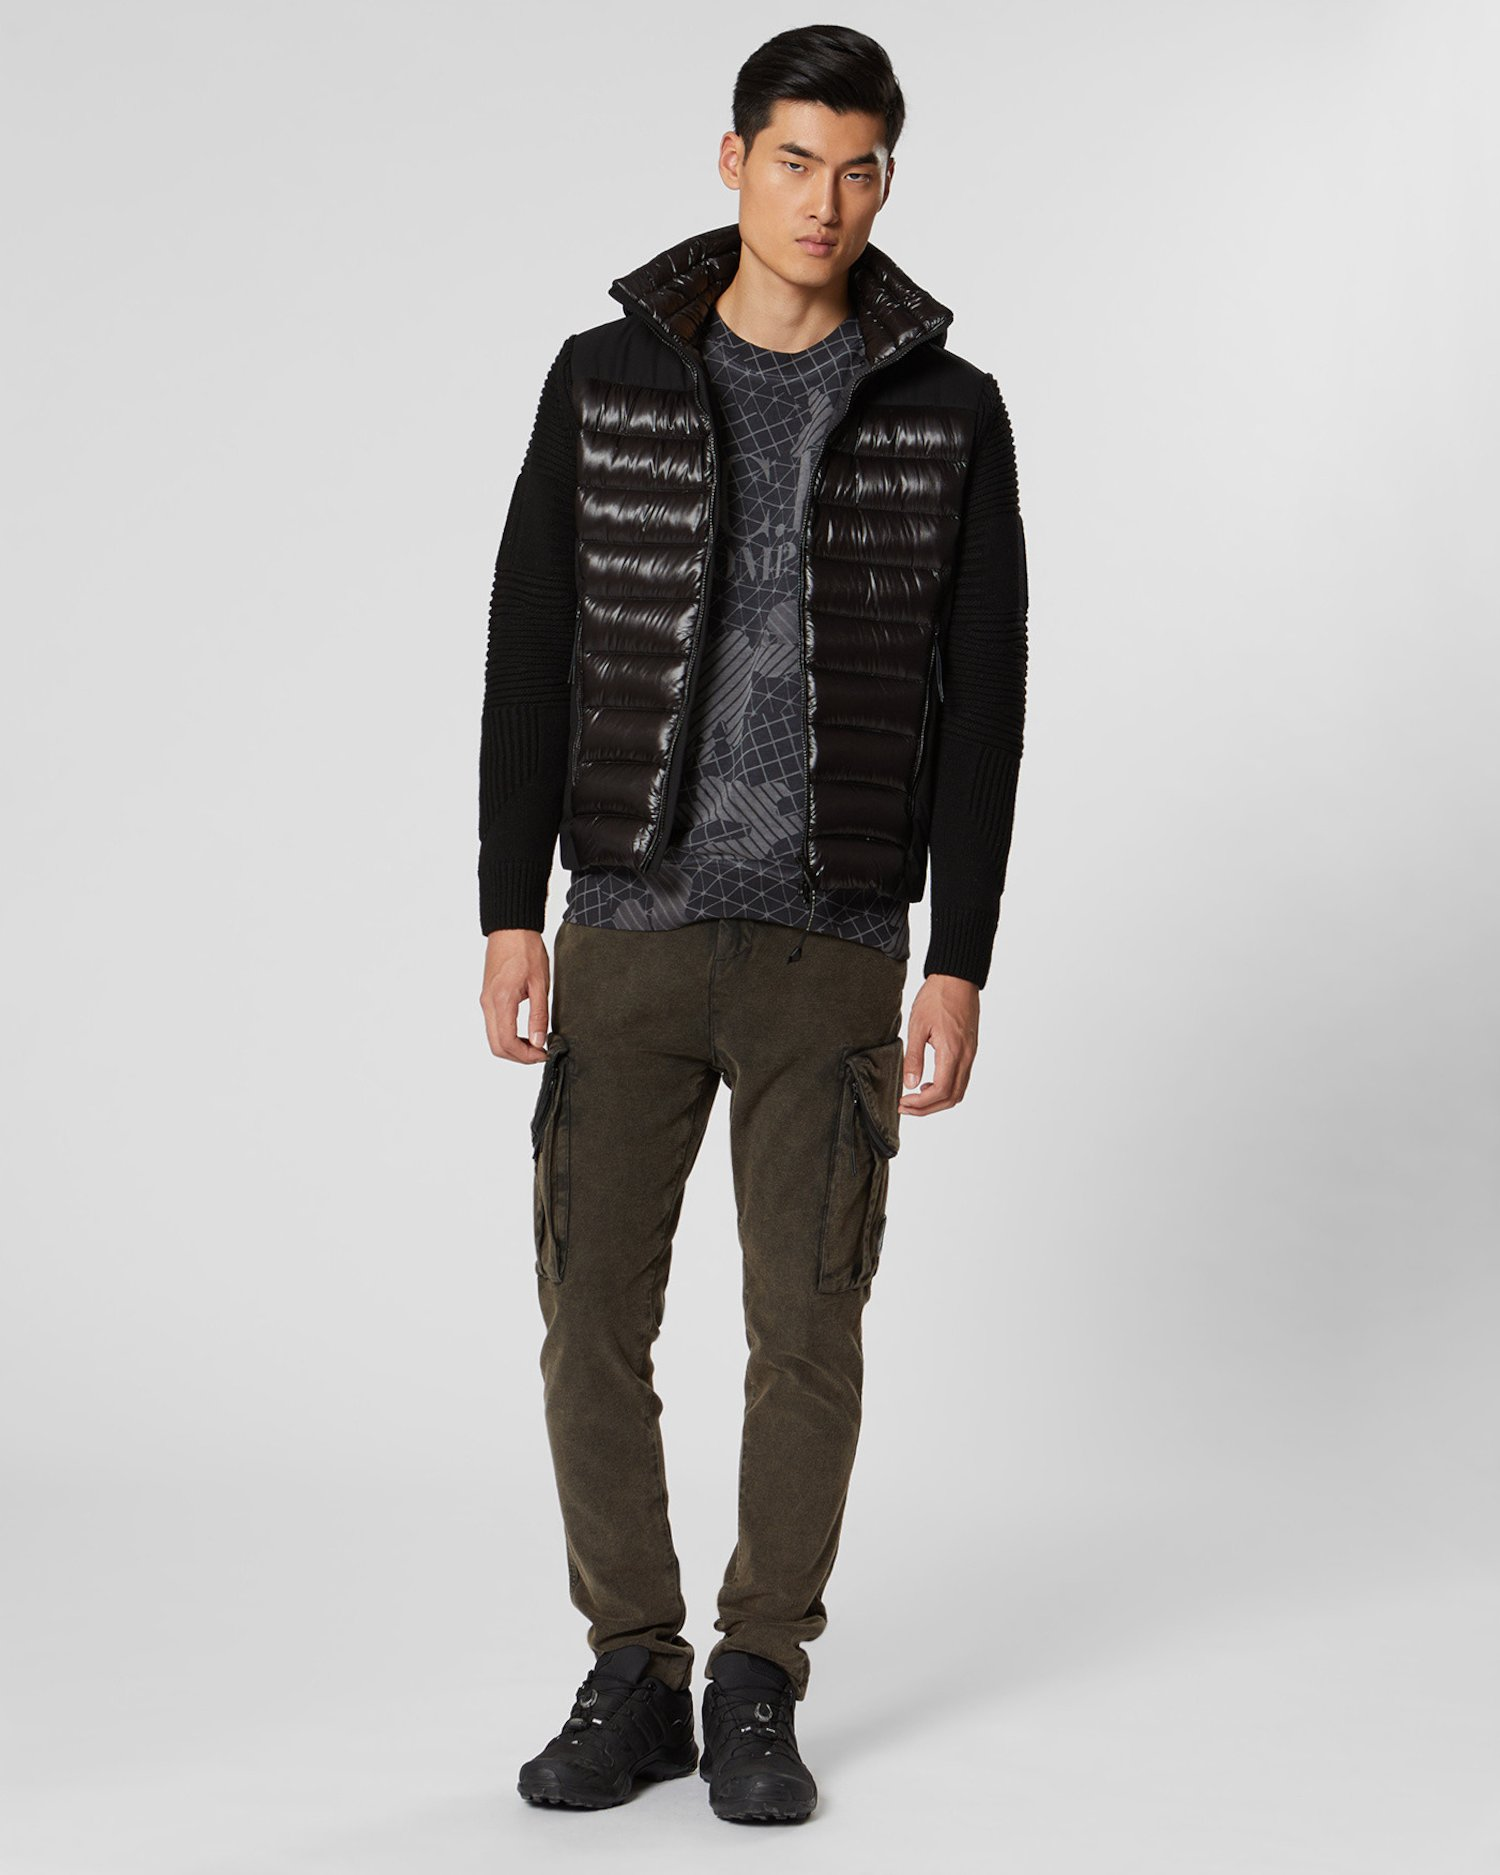 Lambswool / nylon Panelled Knit Goggle Jacket